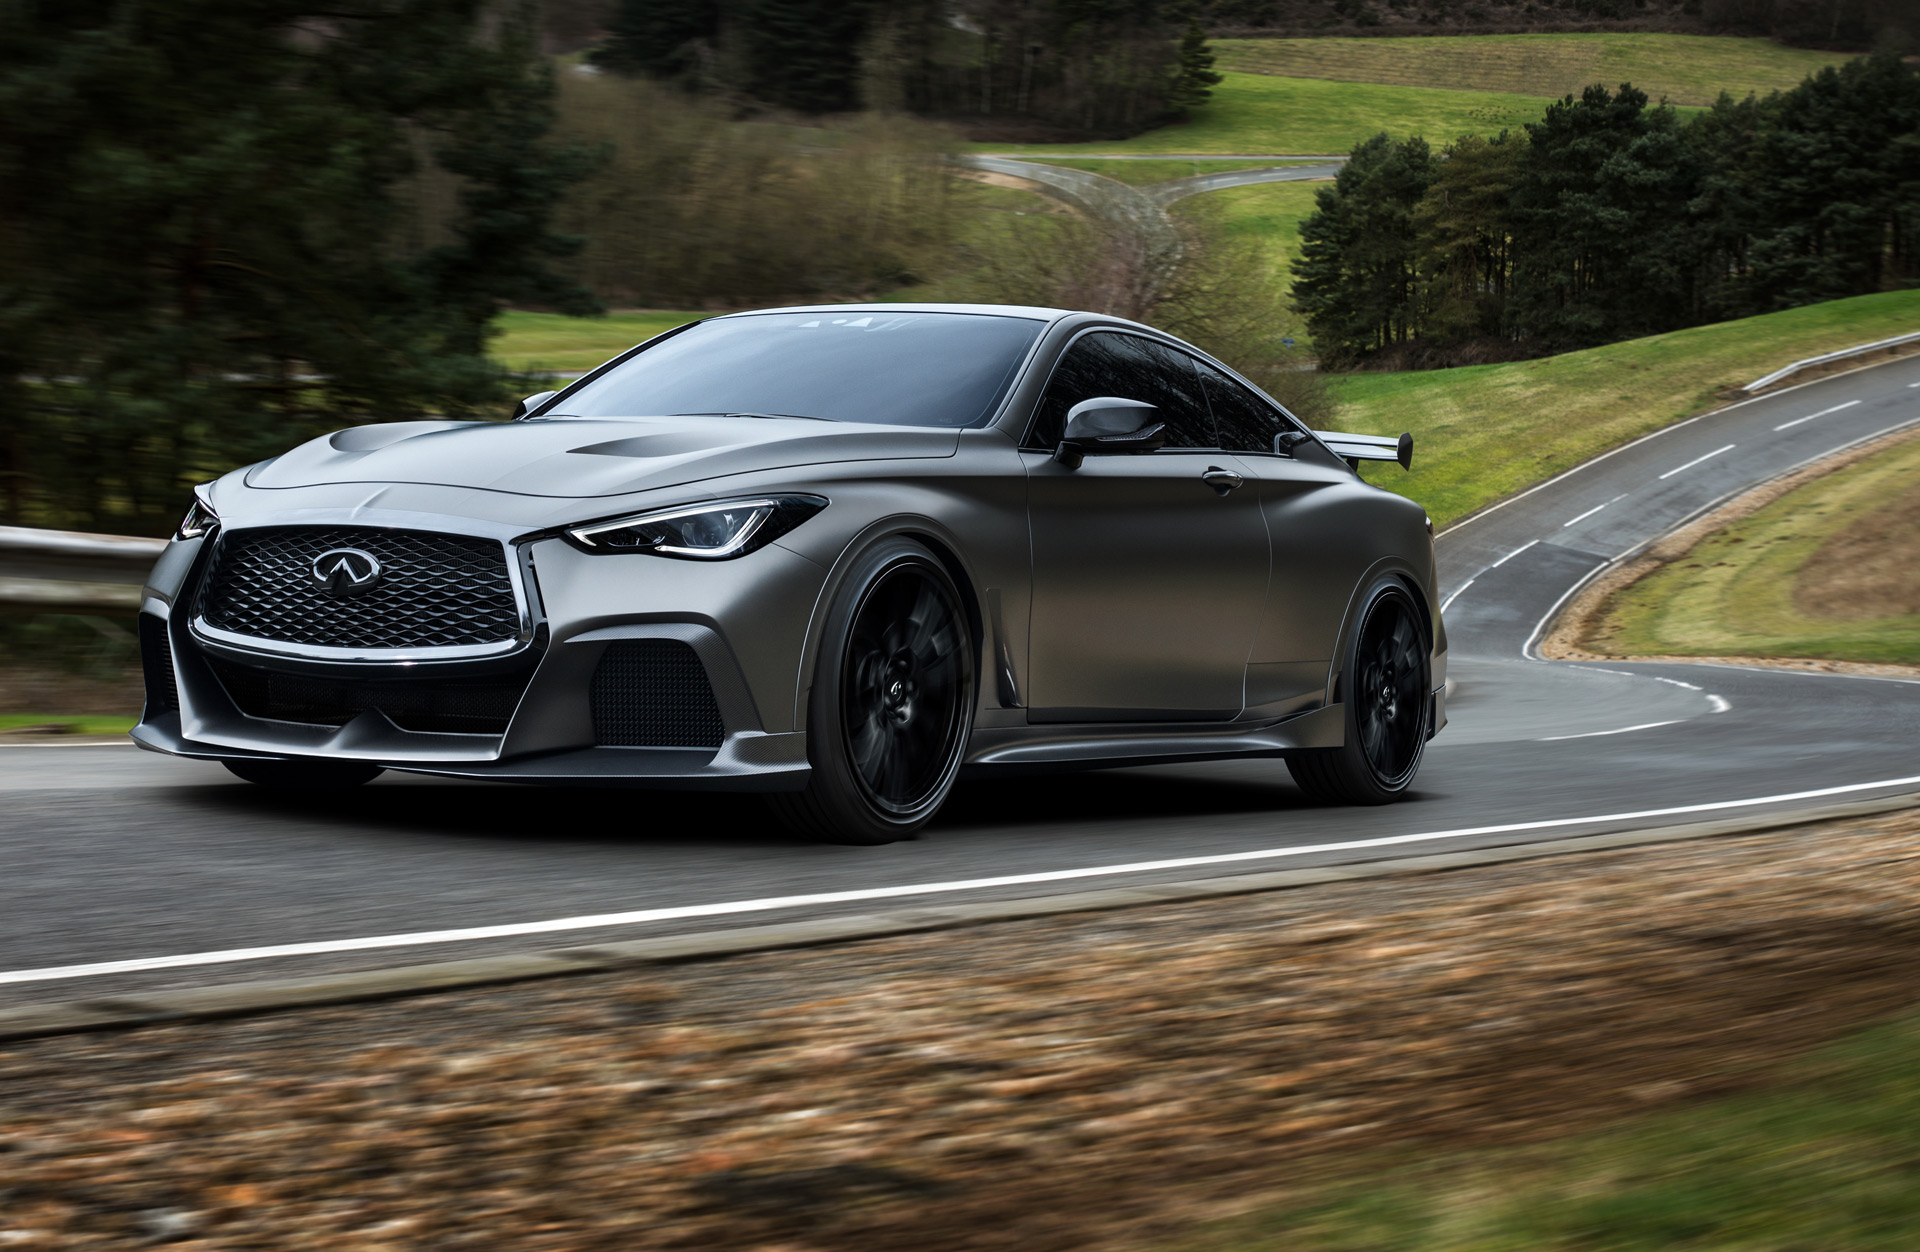 85 New 2020 Infiniti Q60 Review